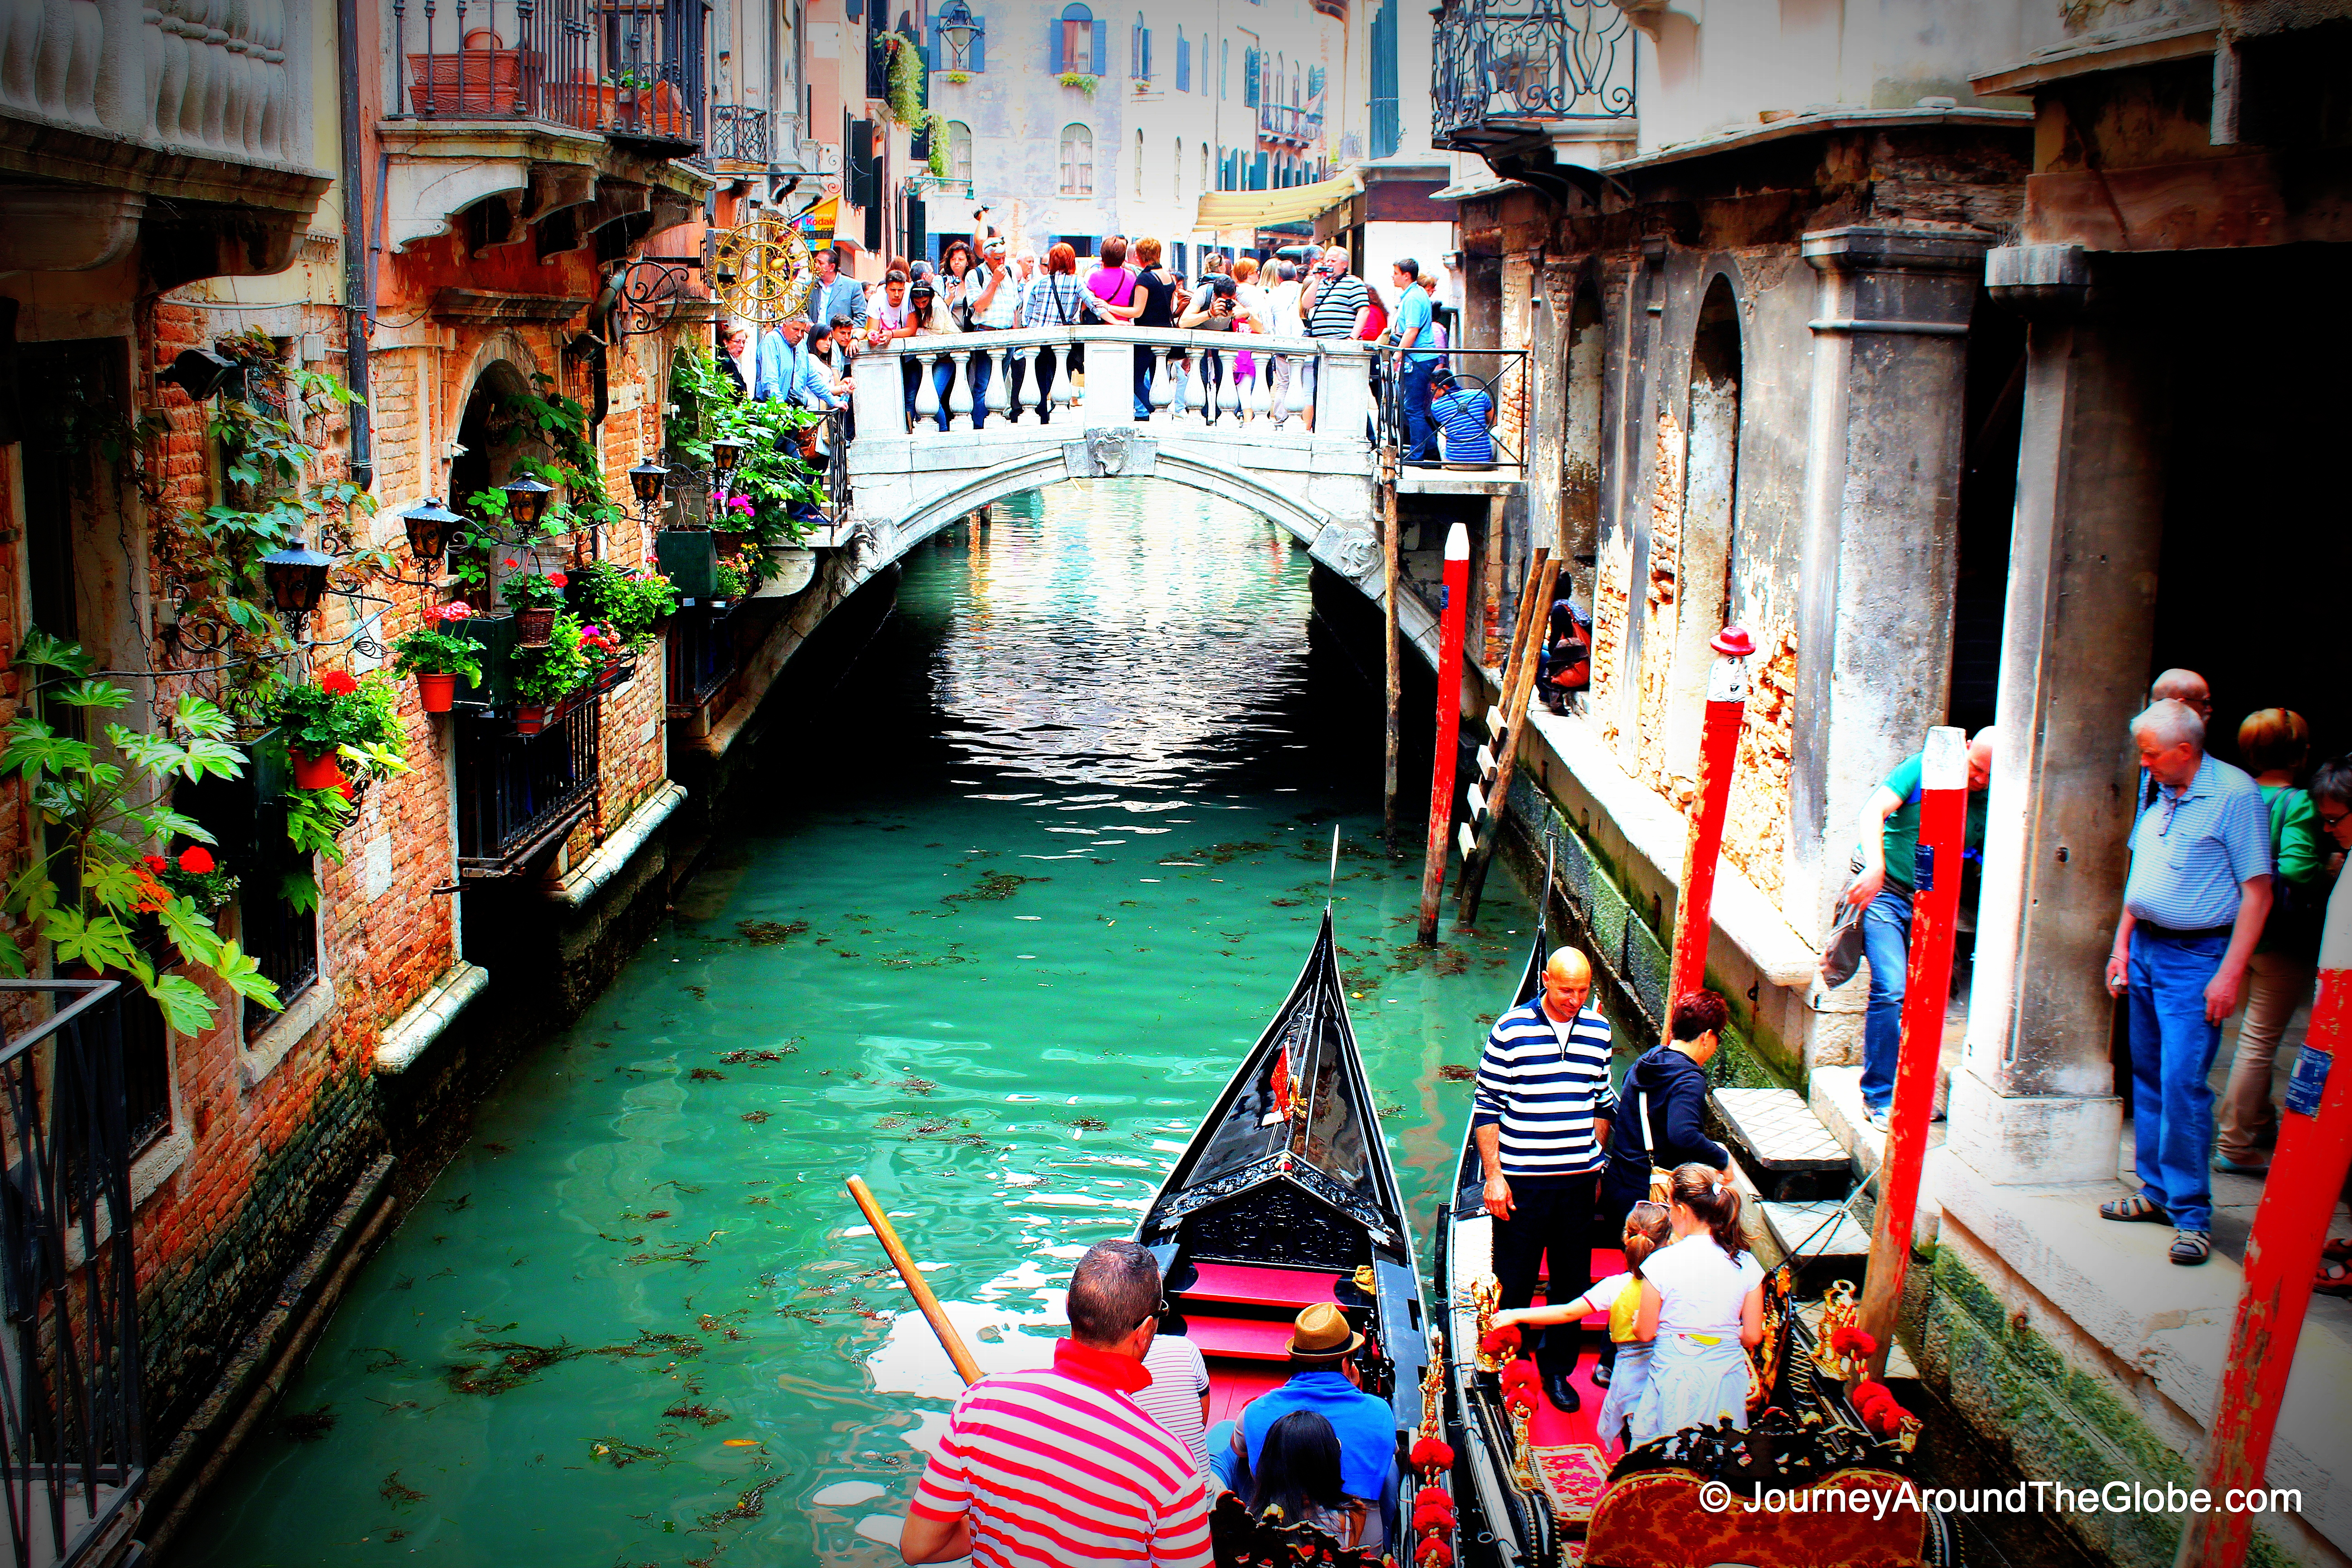 A city on water - Venice, Italy - Journey Around The Globe